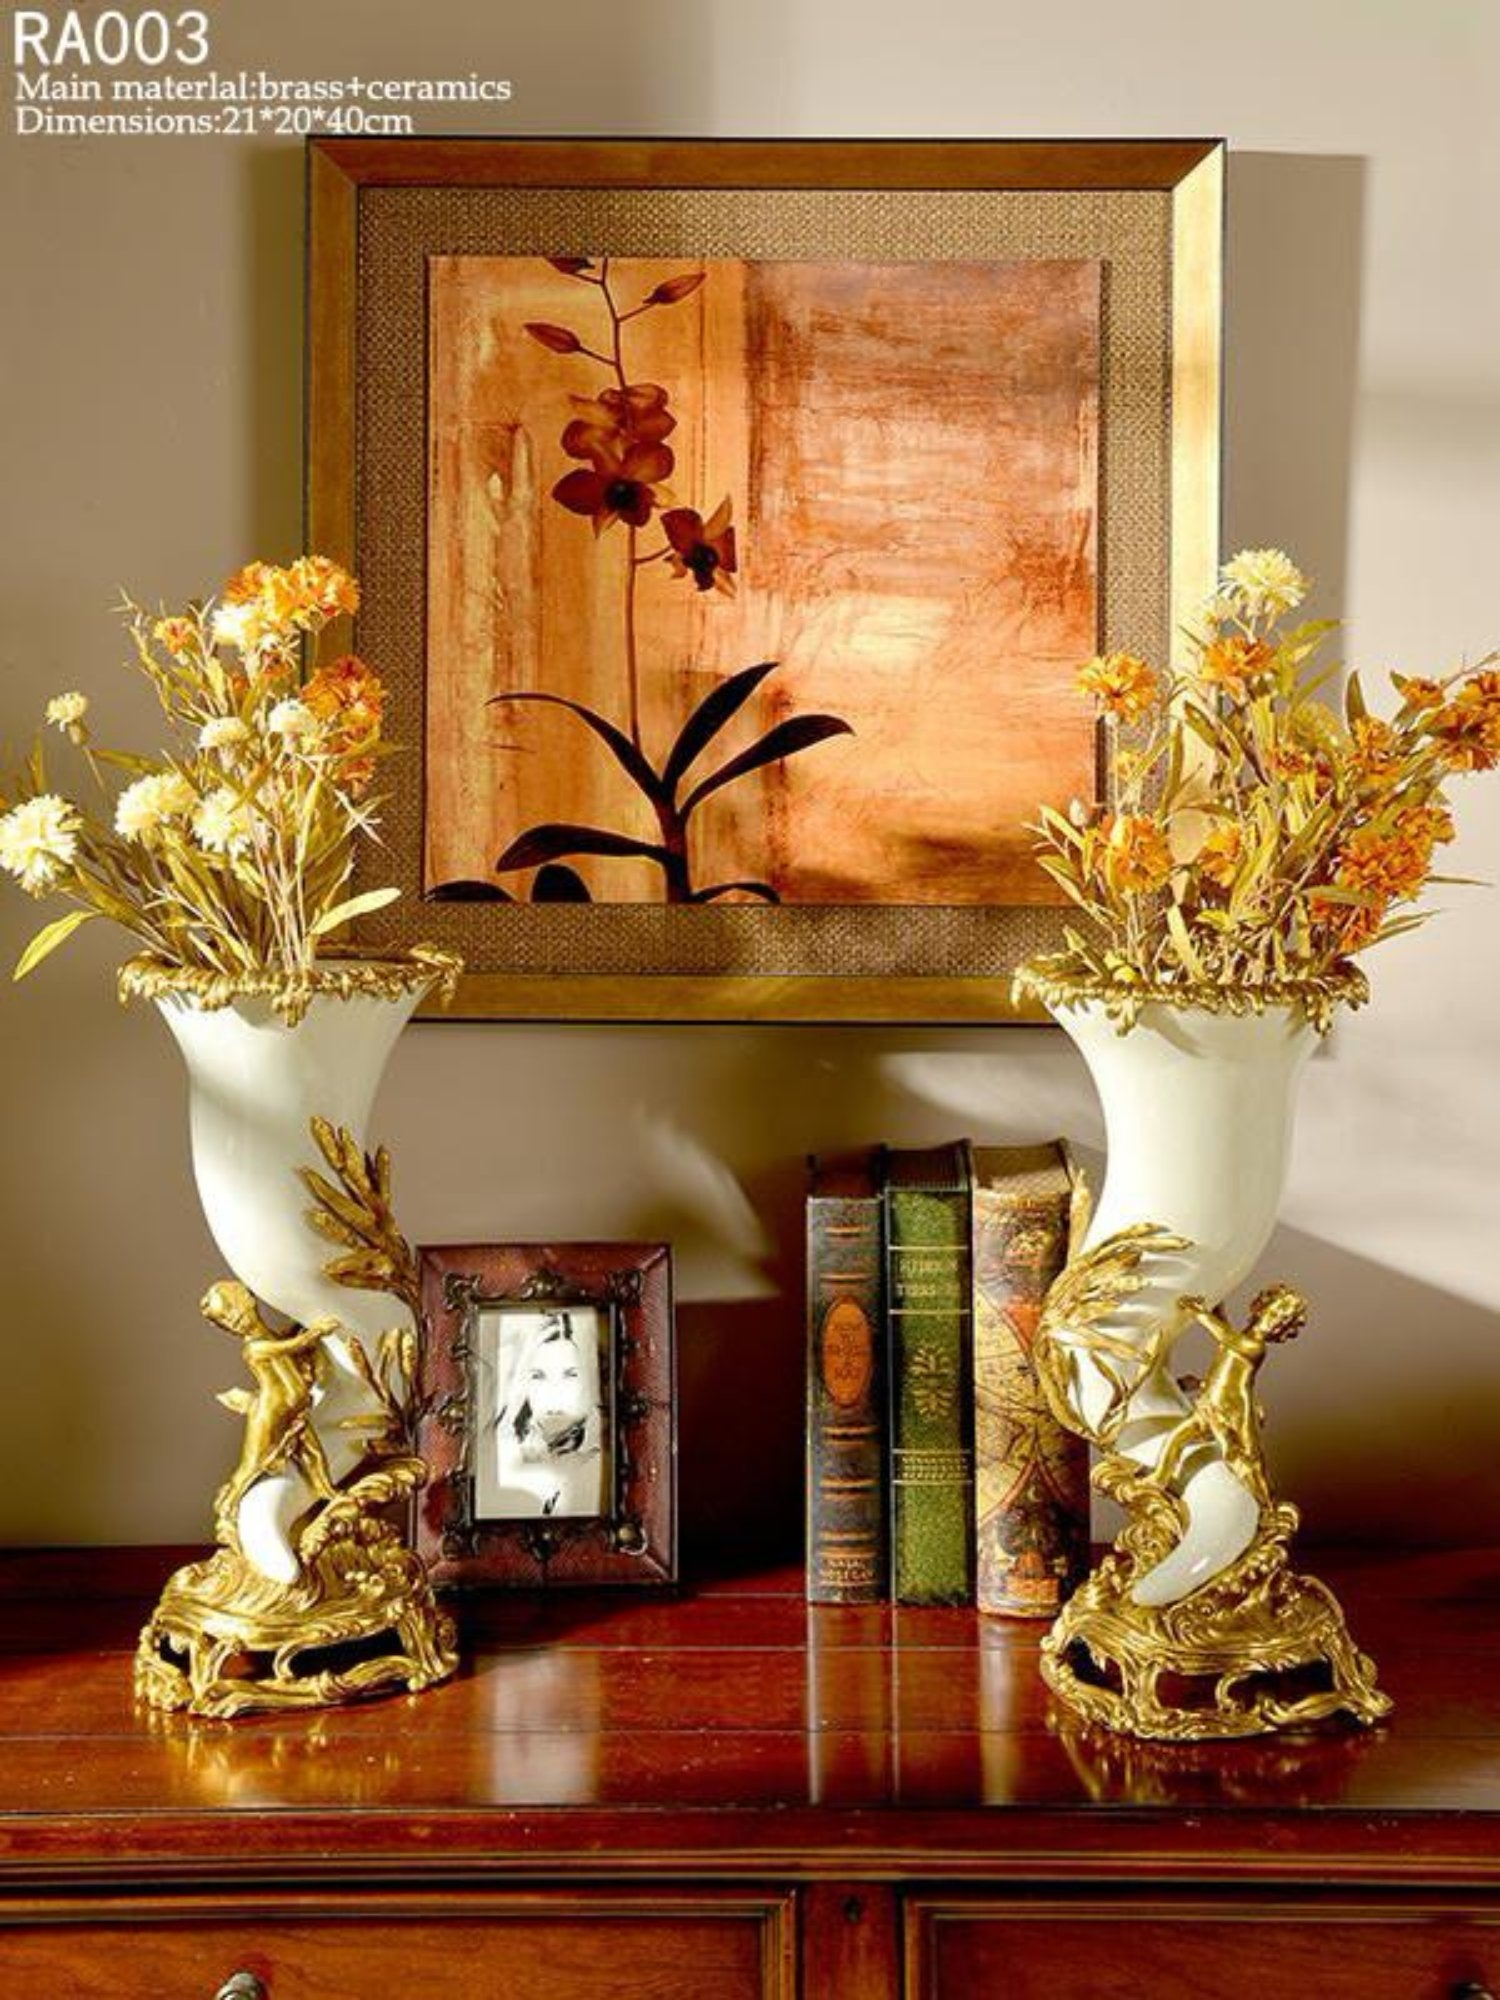 Handmade Luxurious Porcelain Brass Vase Centerpiece